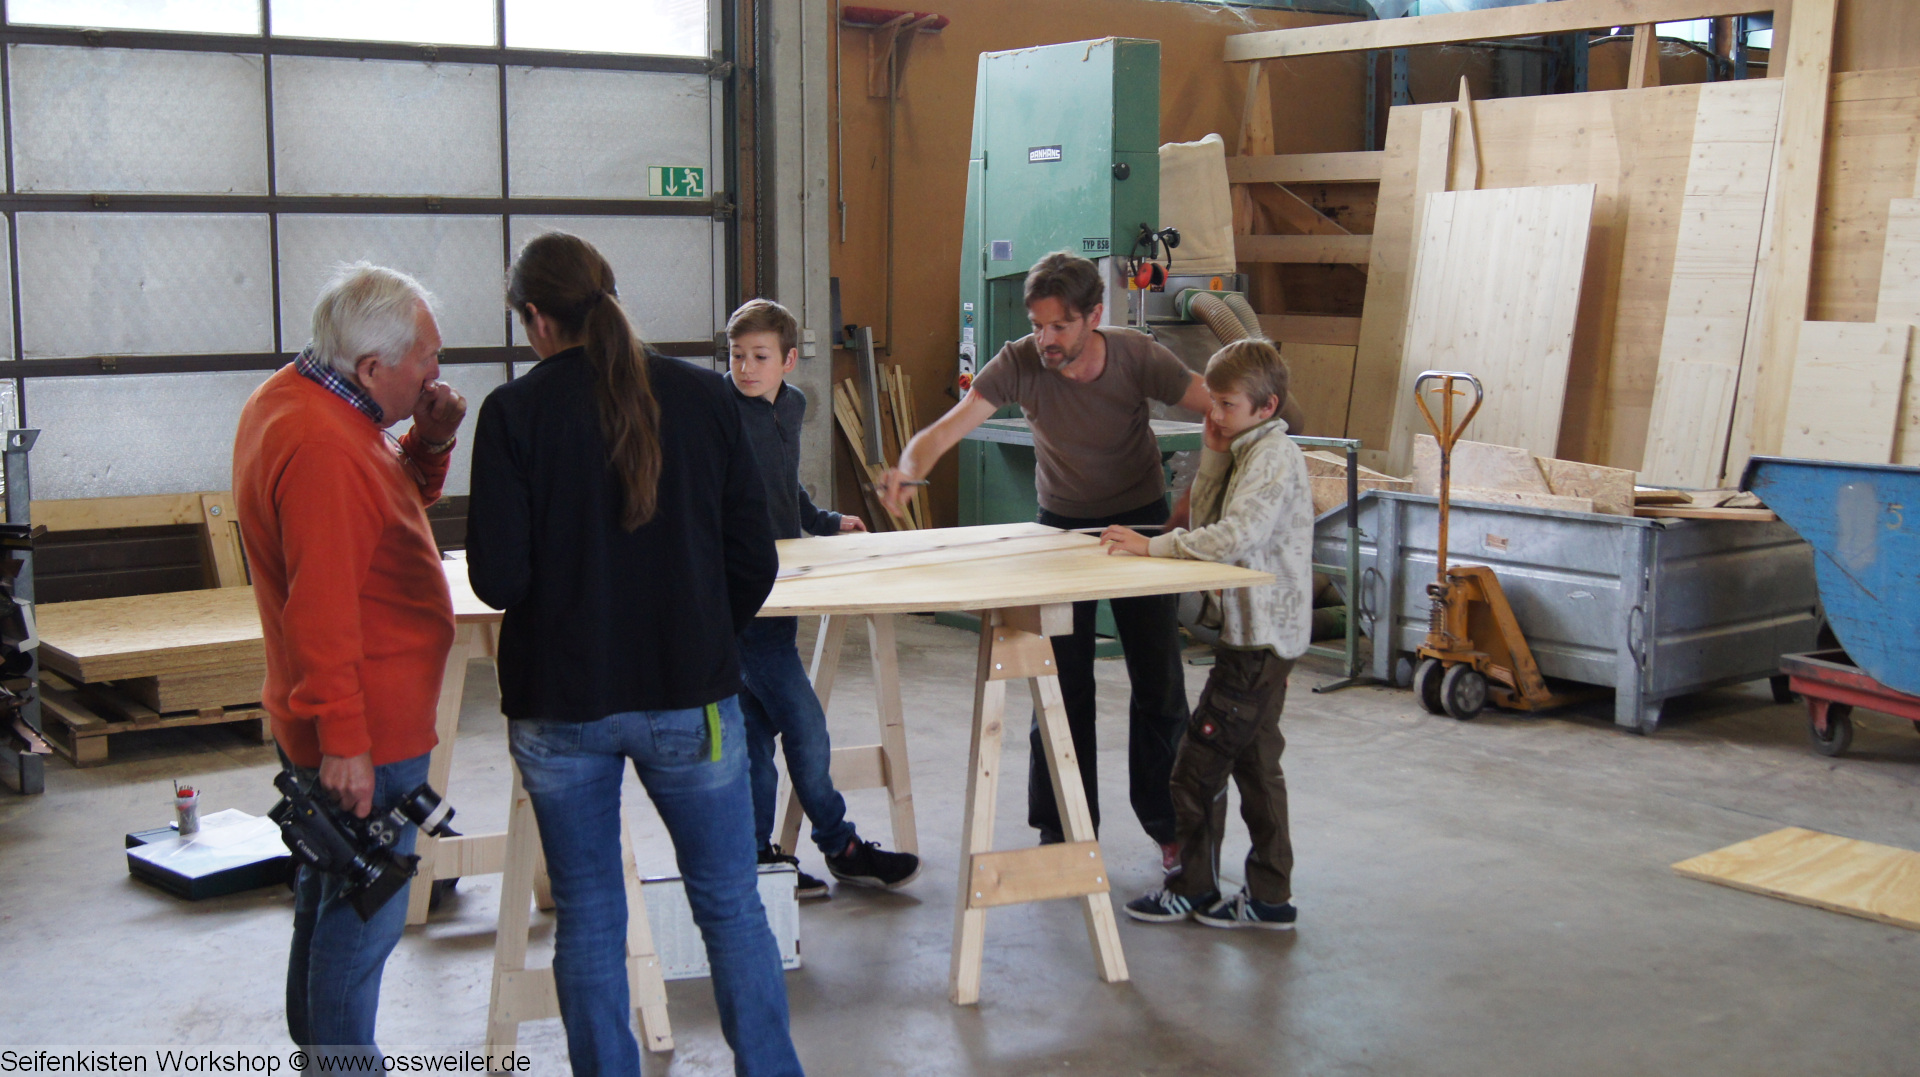 Ossweiler Seifenkisten Workshop 2016 053